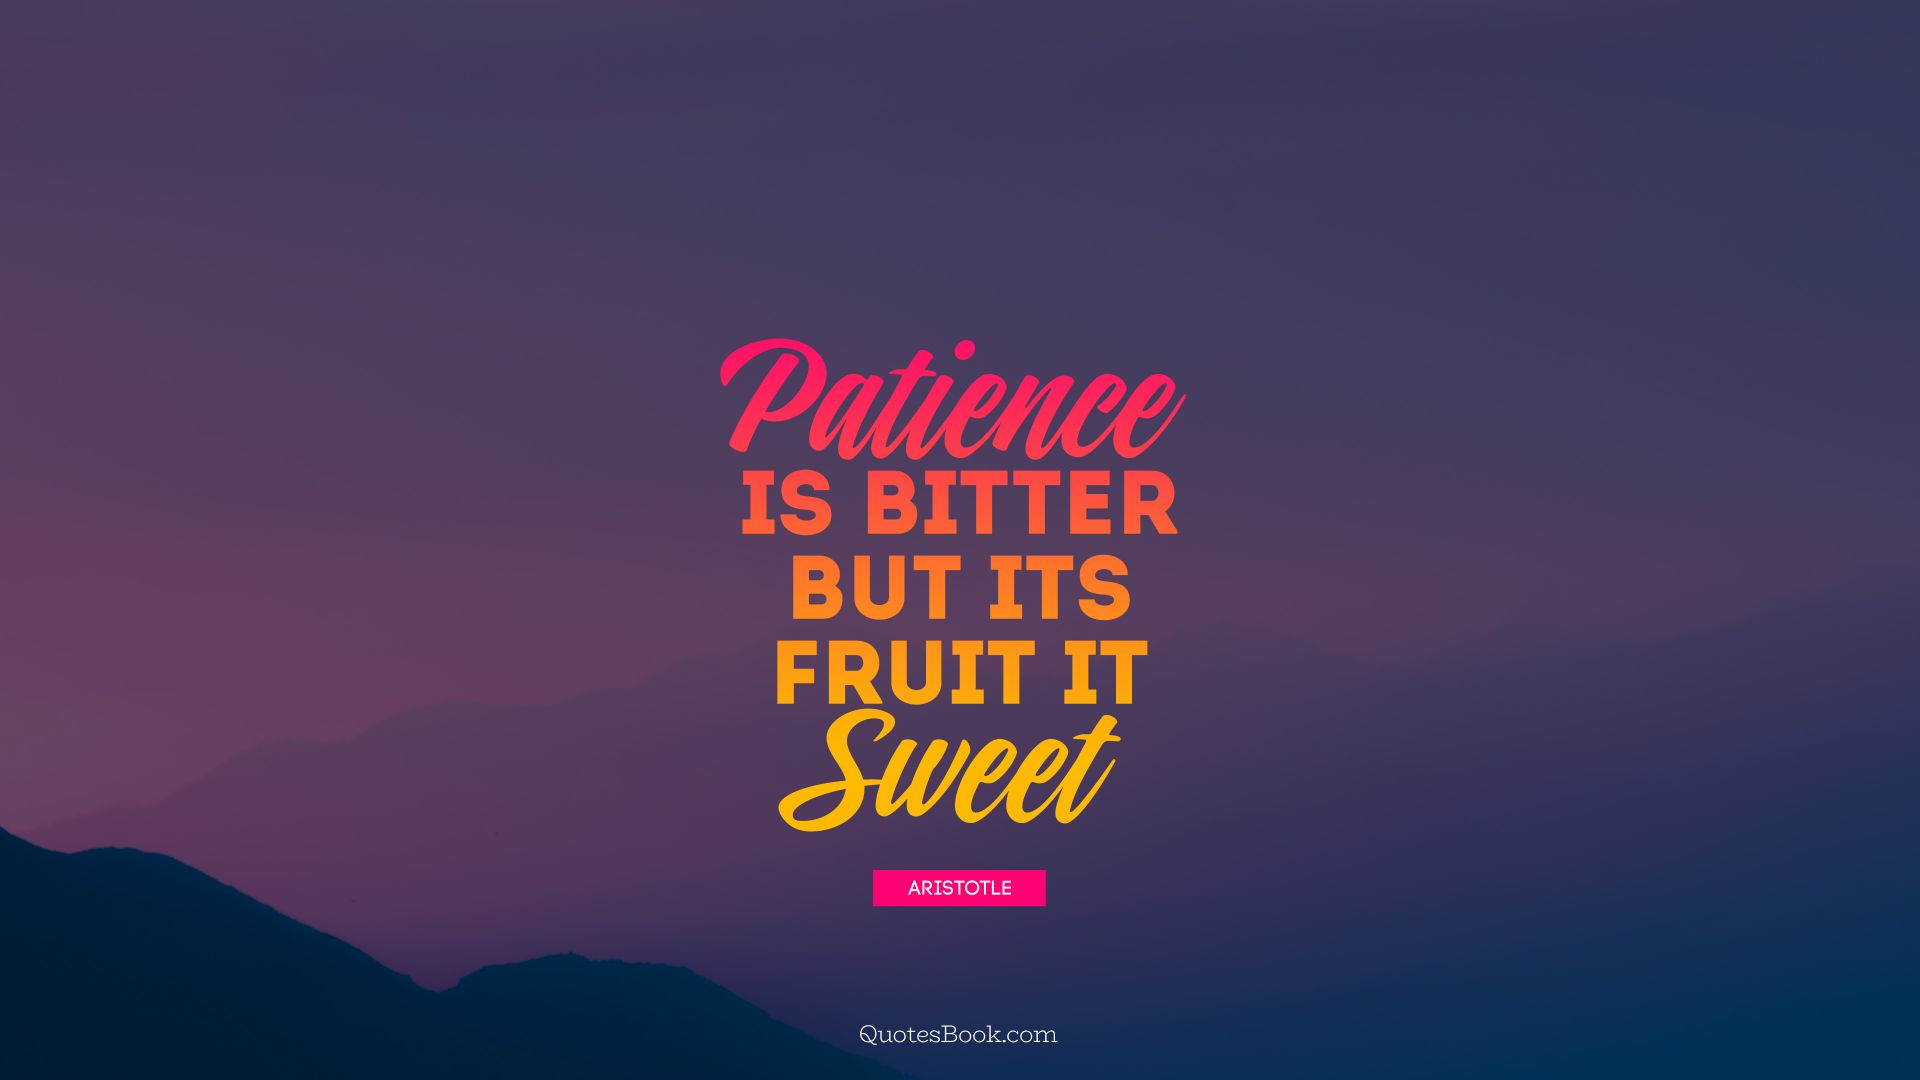 Patience is bitter but its fruit is sweet . - Quote by Aristotle